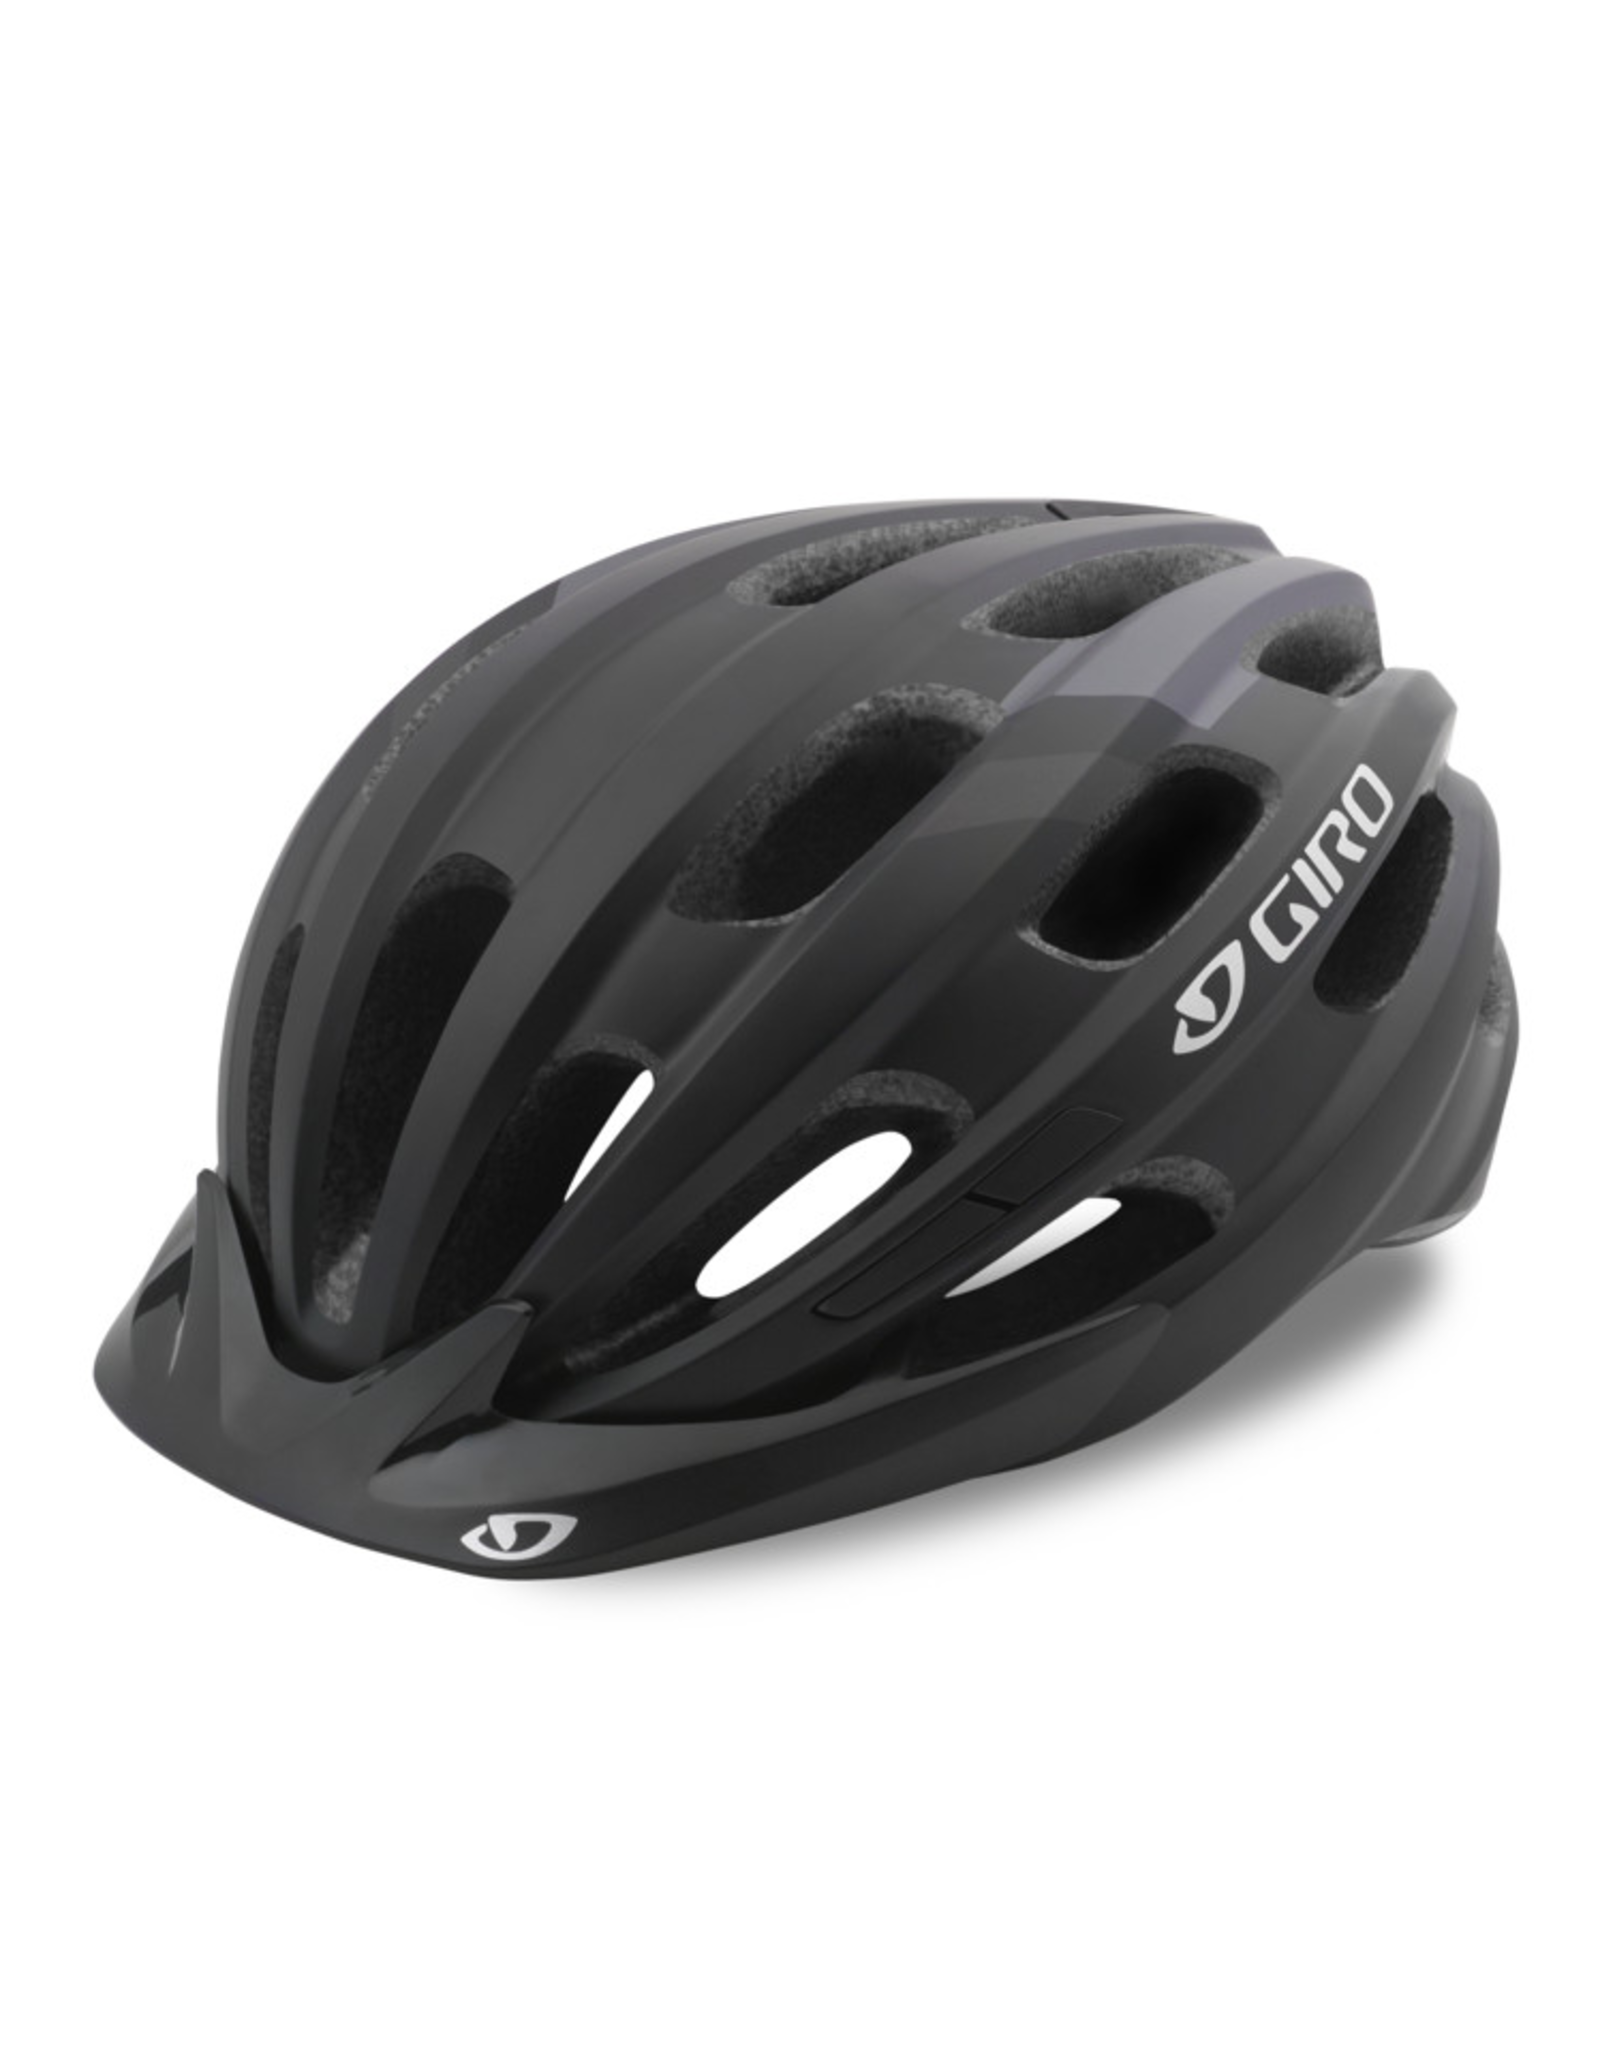 Giro CASQUE GIRO REGISTER 67 NOIR MAT